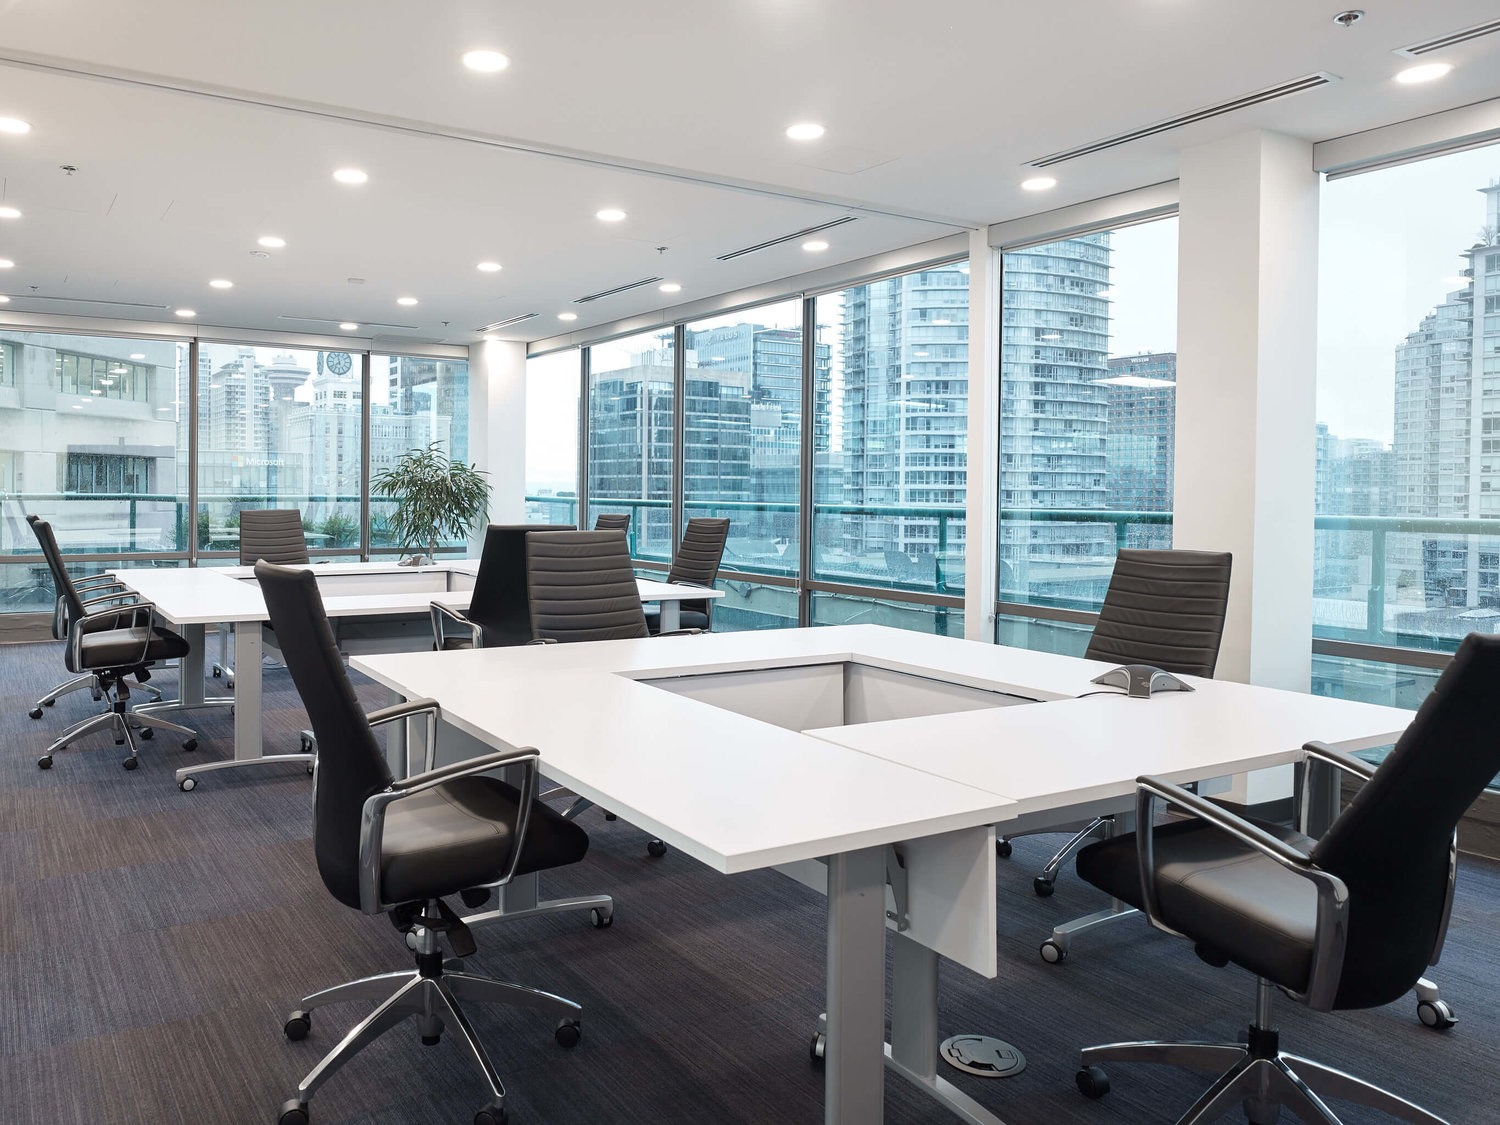 Vancouver office space meeting rooms Lease Meeting Spaces Kuehnenagelvancouveroffice8 Daily Hive Inside Kuehne Nagels New Vancouver Headquarters Officelovin